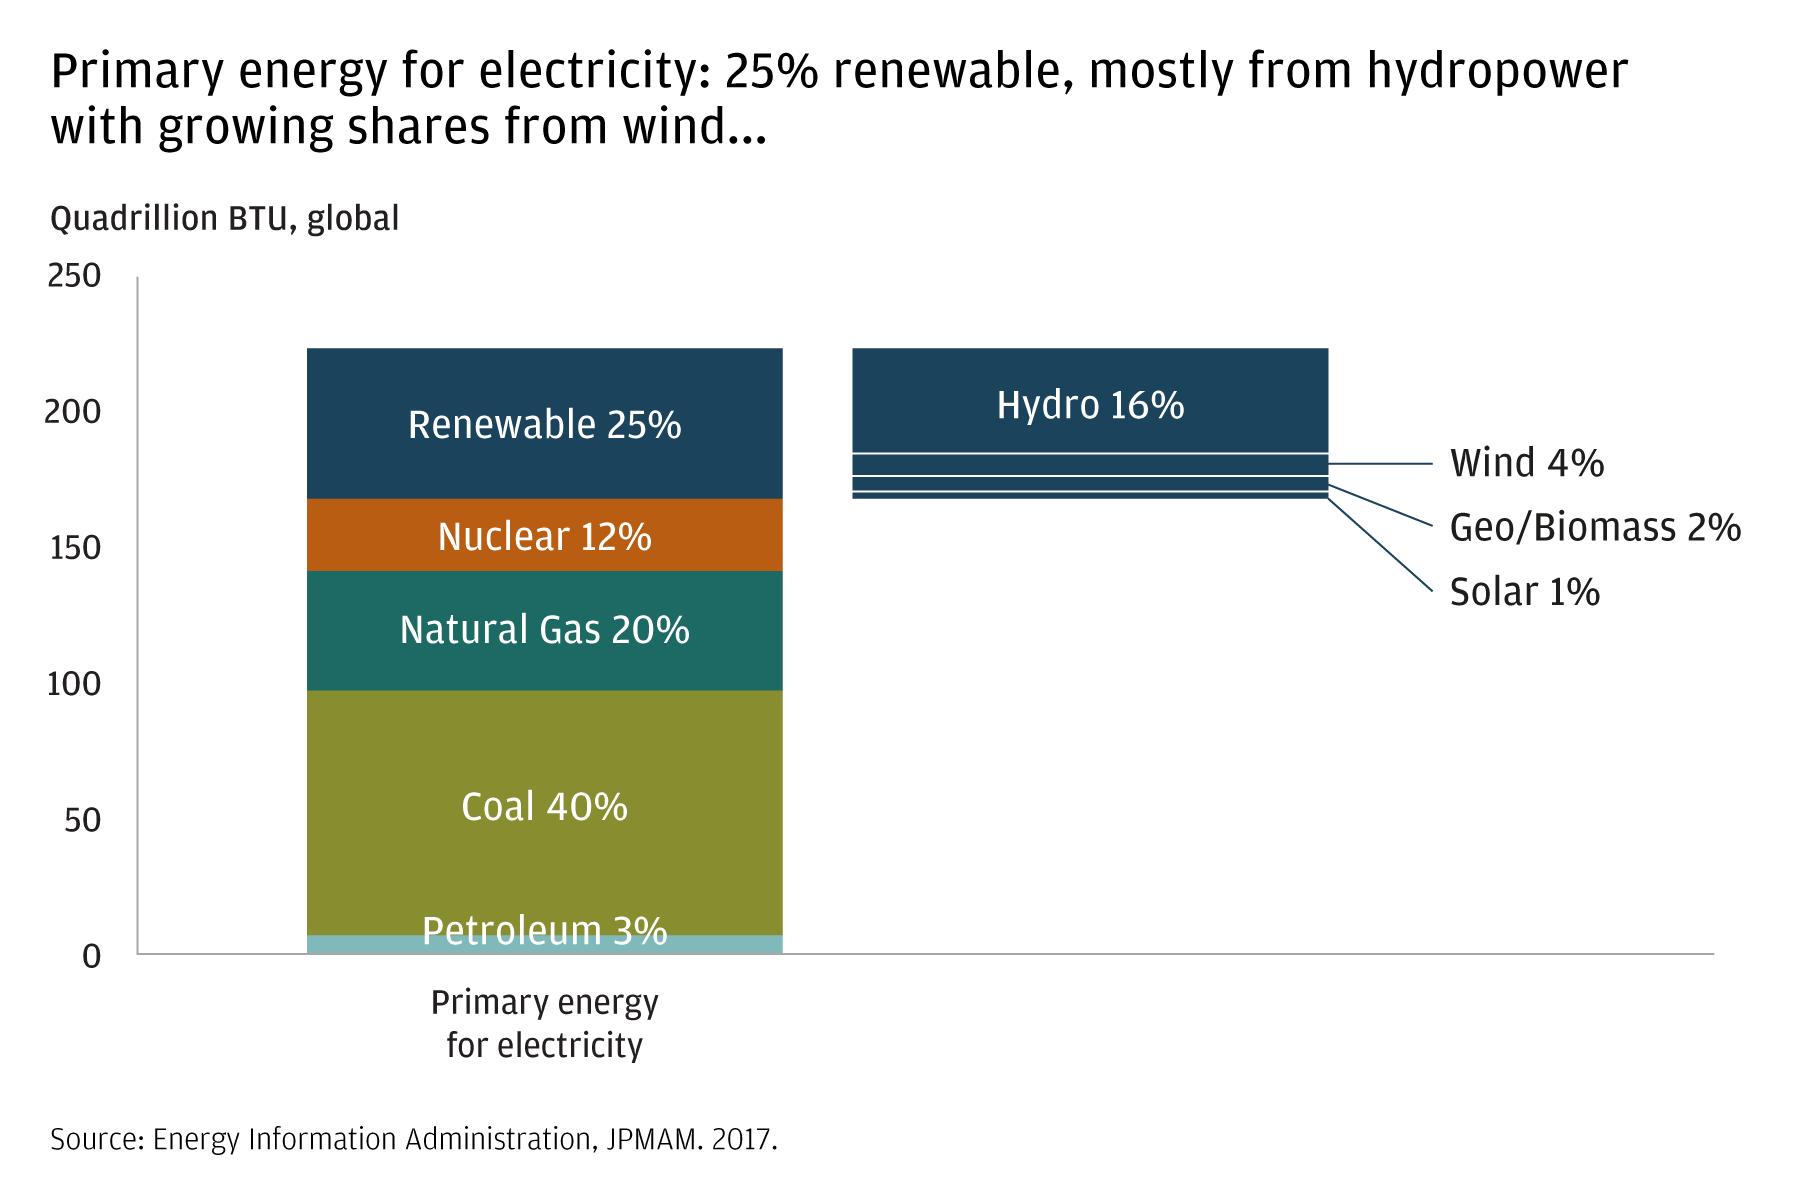 This chart breaks down the primary generators of electricity around the world. In 2017, renewable sources (25%), nuclear (12%), natural gas (20%), coal (40%) and petroleum (3%), were responsible for generating electricity.